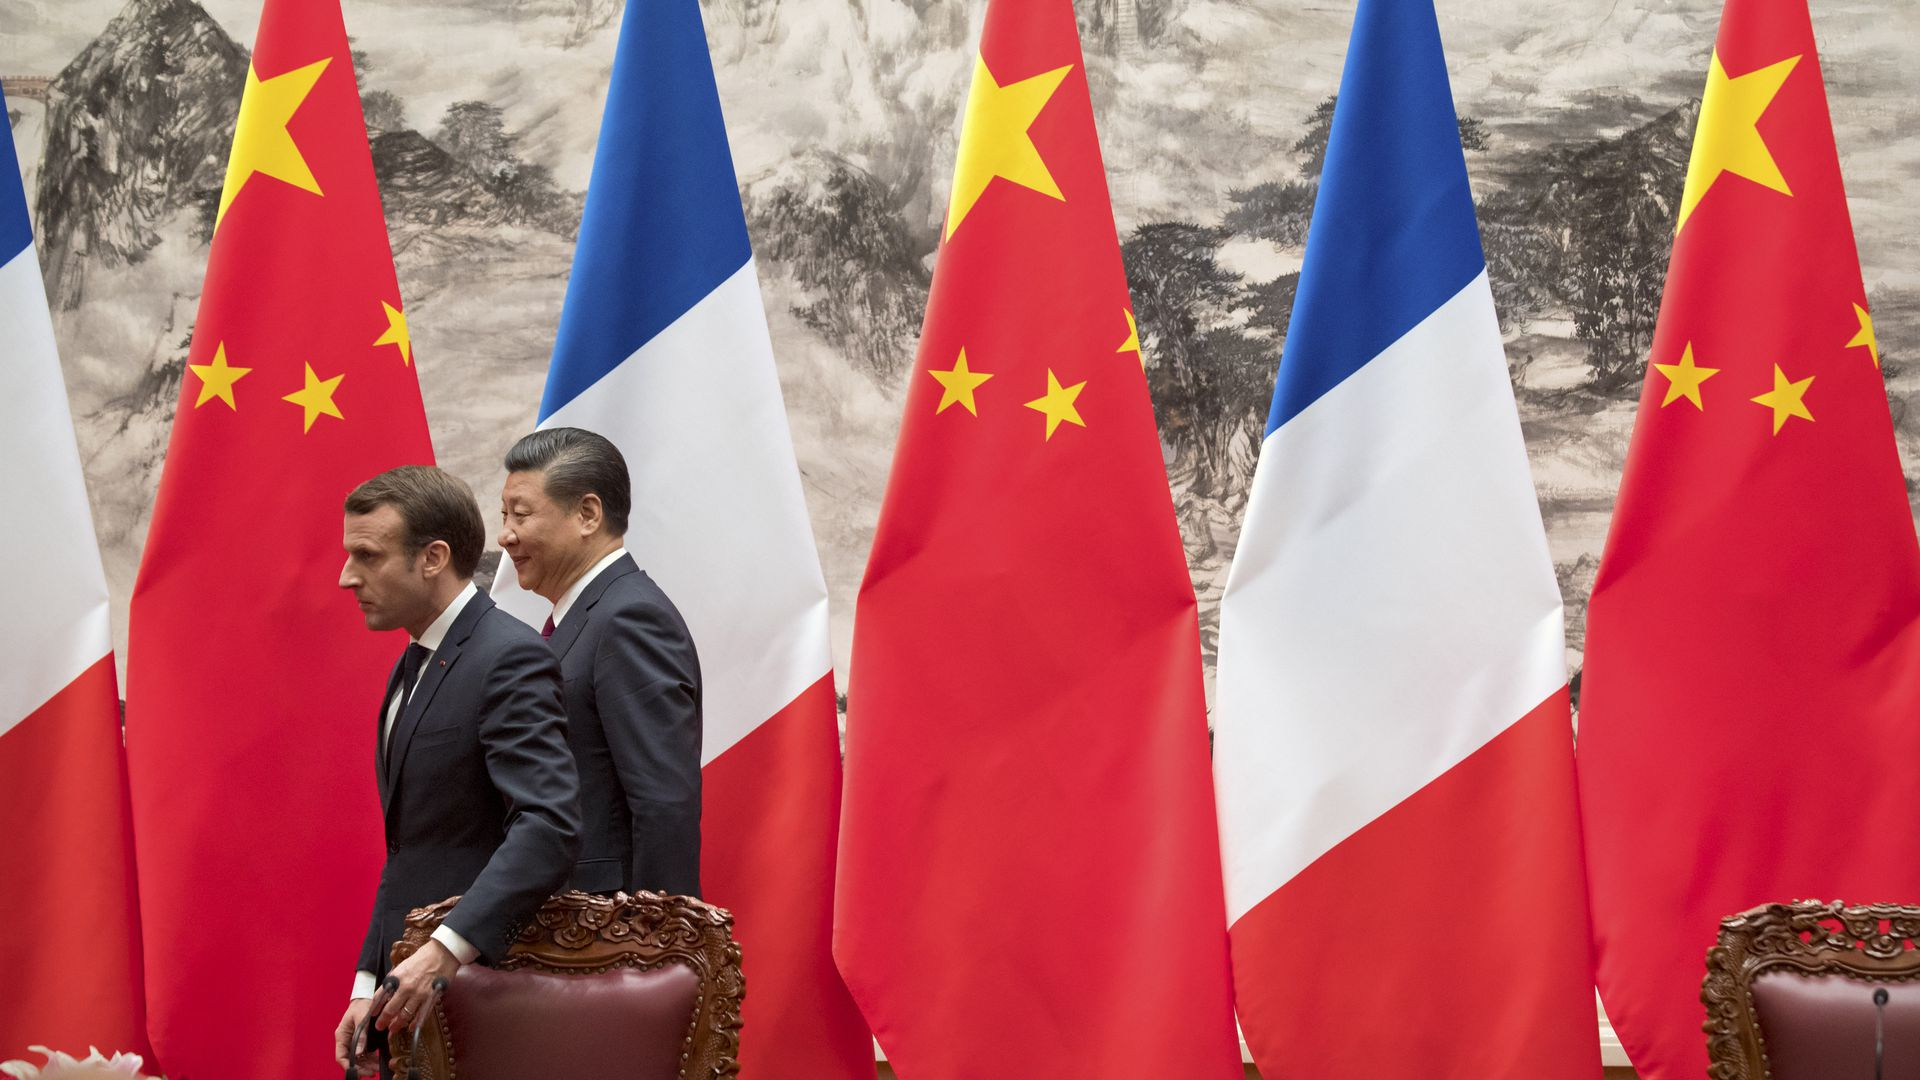 Macron and Xi walk out of a room decorated with French and Chinese flags